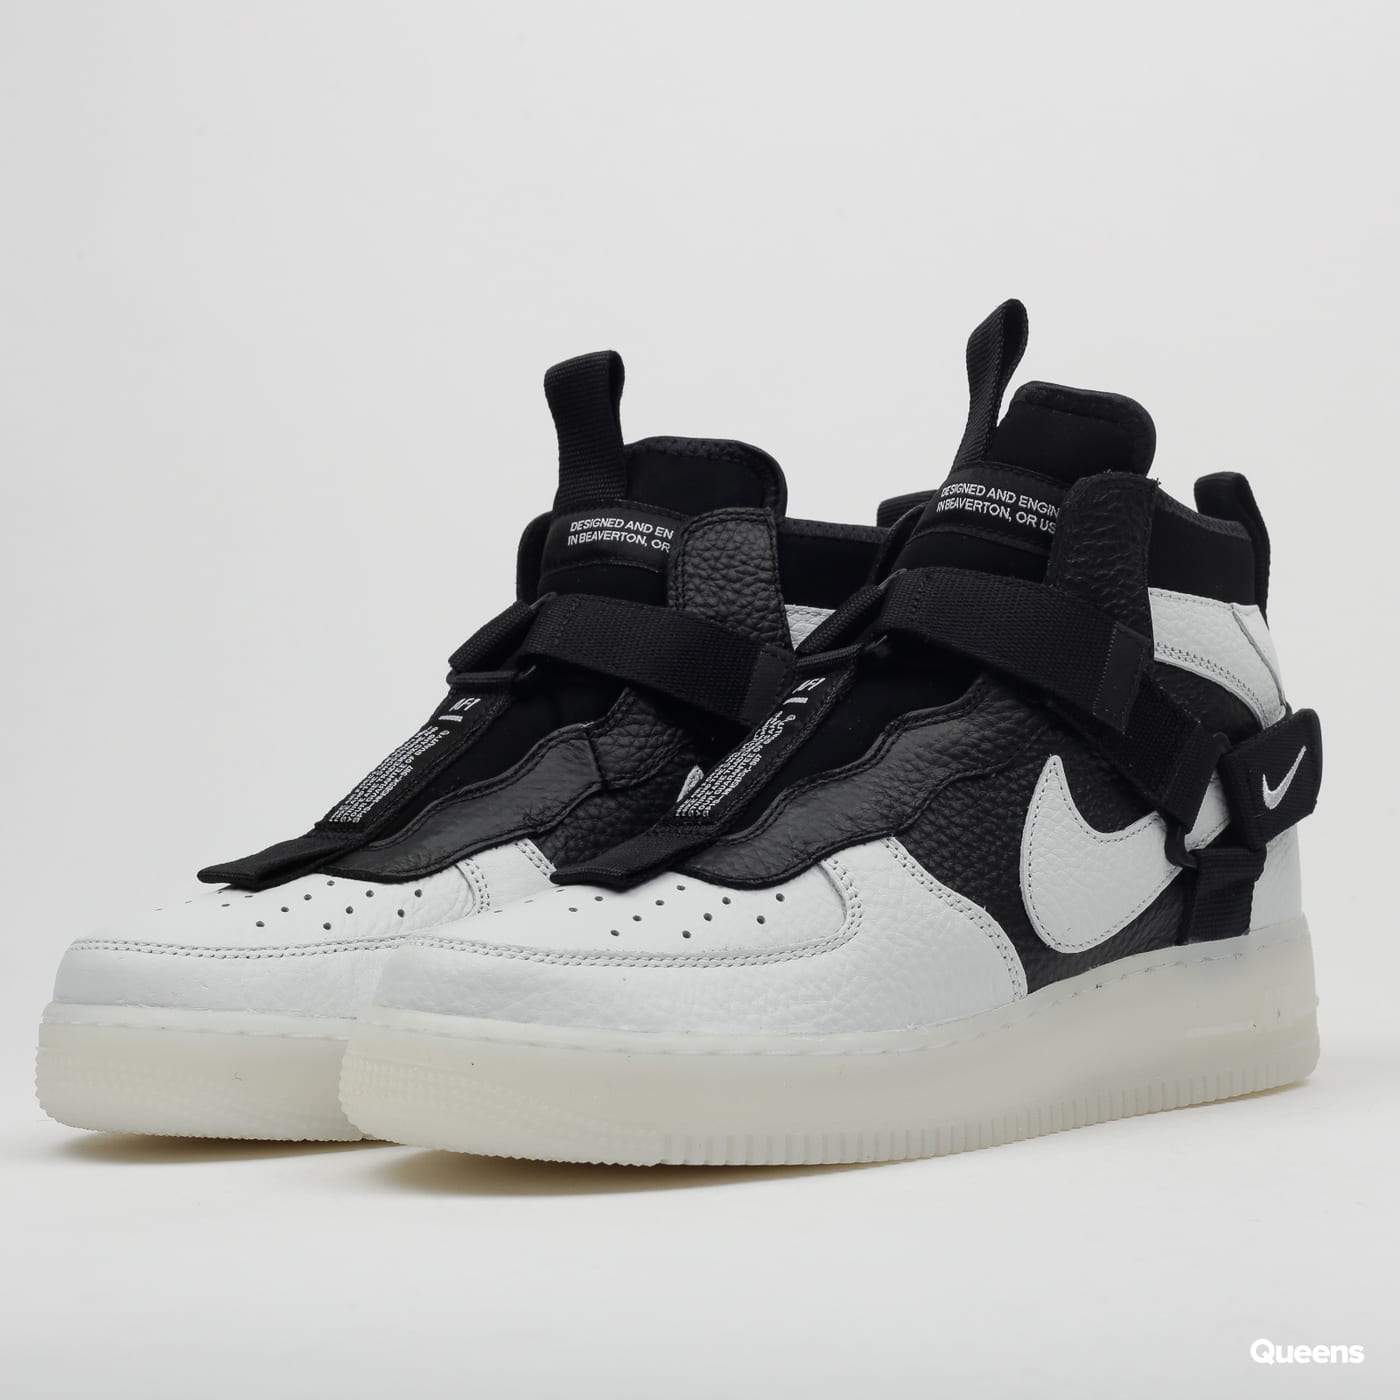 Nike Air Force 1 Utility MId off white / black - white